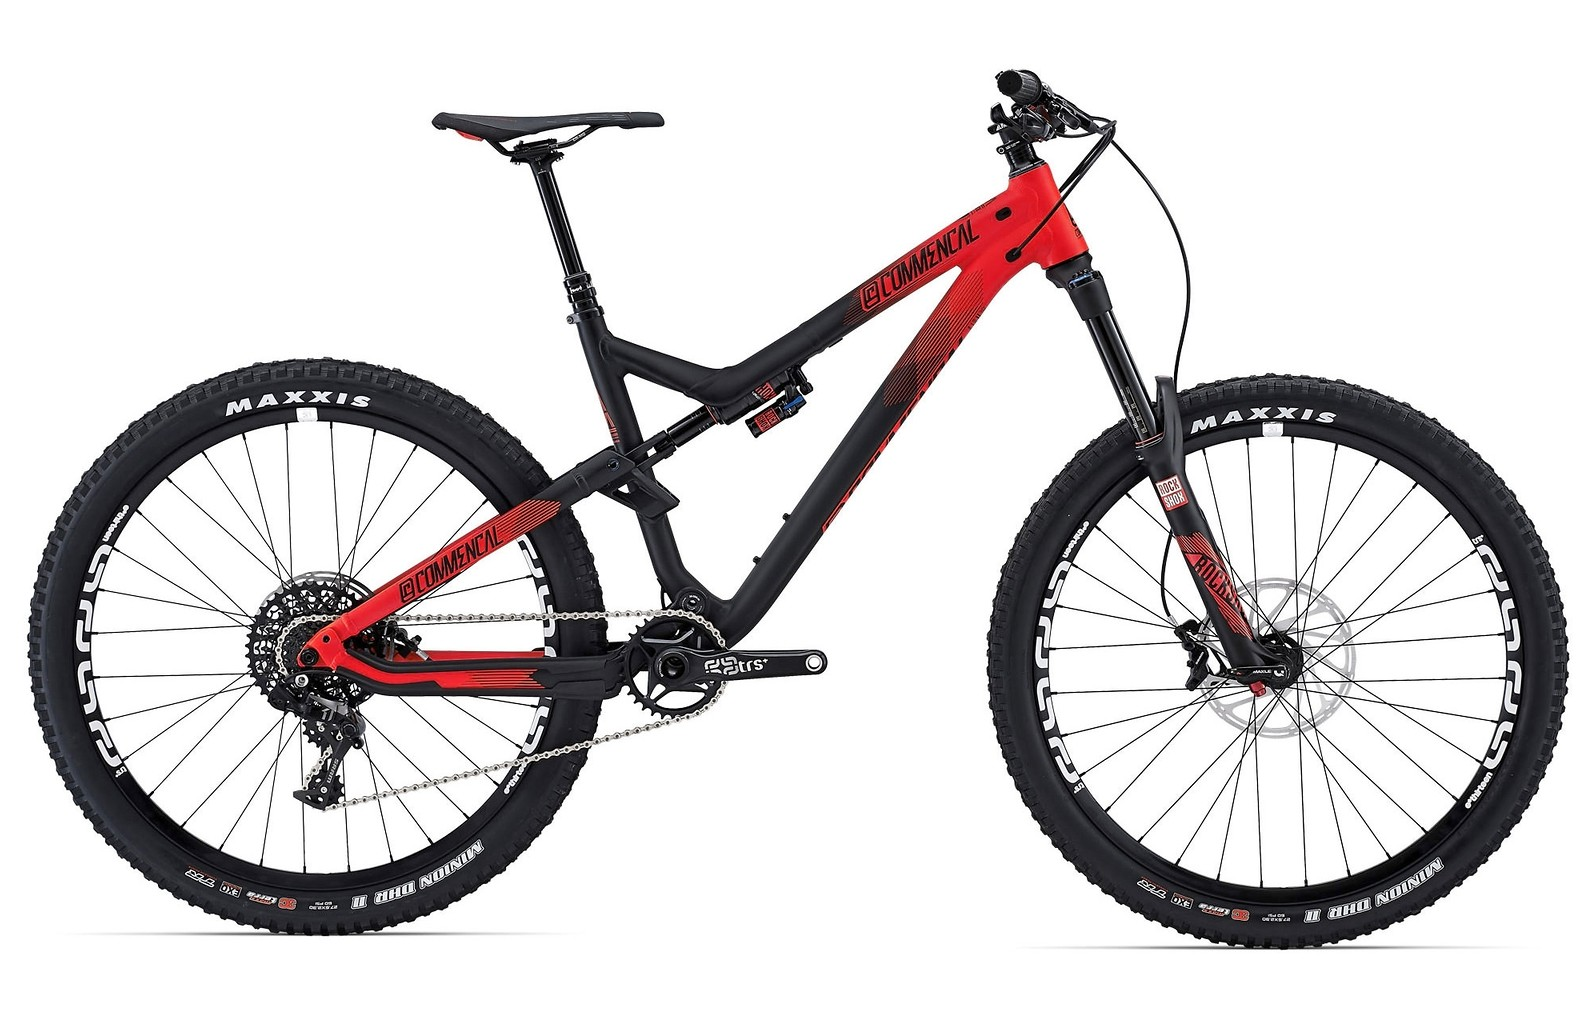 2016 Commencal Meta AM V4 Race RockShox Bike